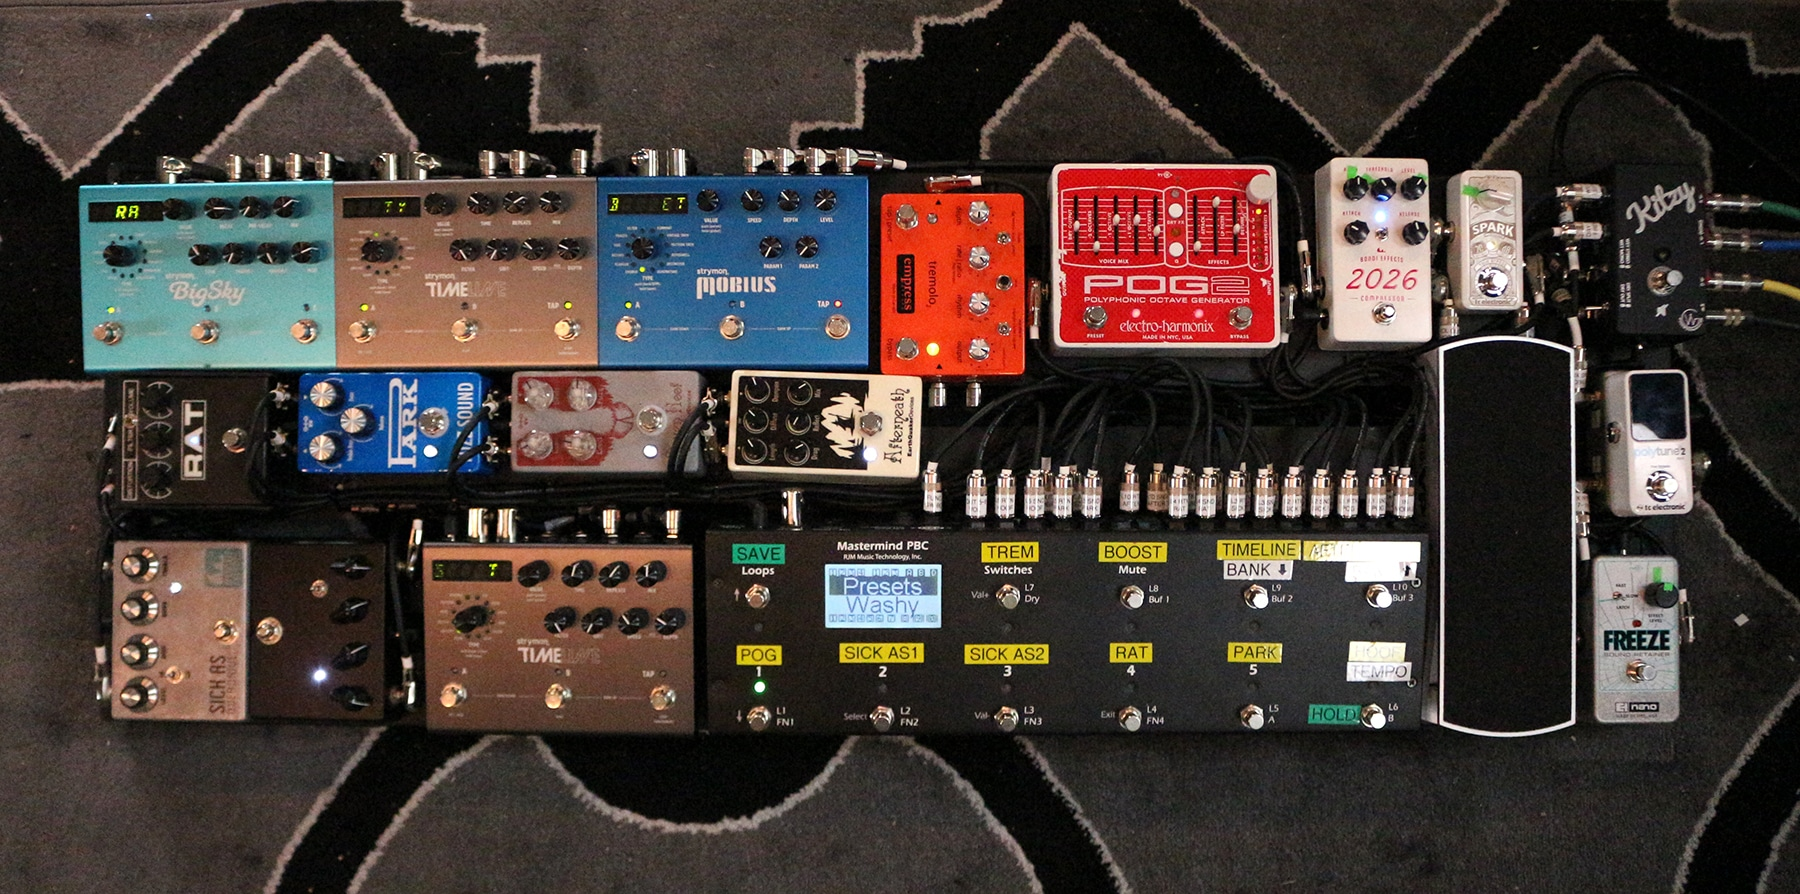 pedalboard feature kitzy strymon. Black Bedroom Furniture Sets. Home Design Ideas